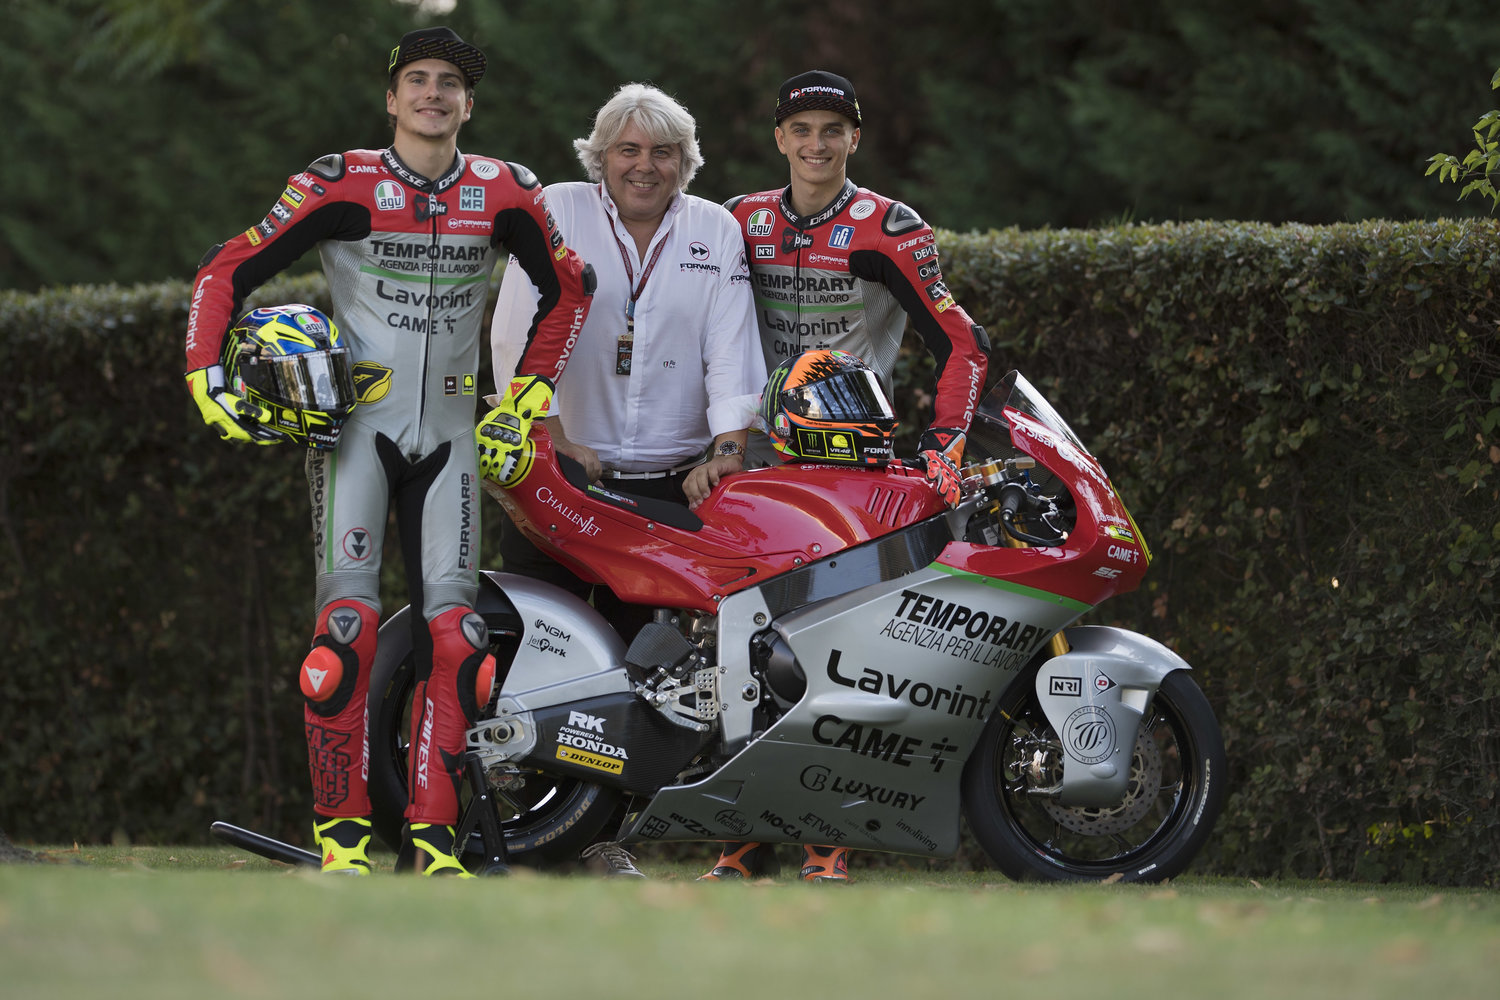 Back in time - Forward Racing Team presents special colors for their Home GP